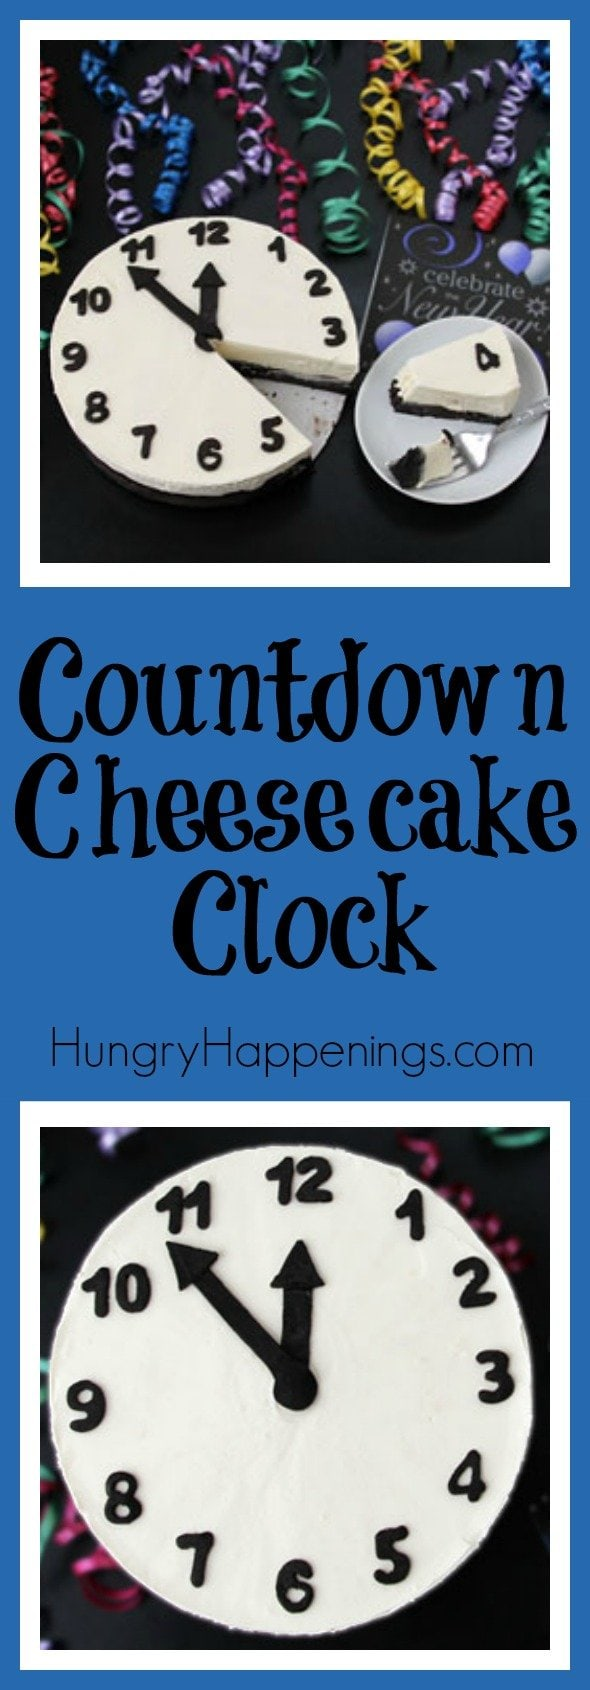 Christmas is over and I'm sure you all are looking for some more ideas for New Year's food! While the clock is winding down, cut into this delicious Black and White Cheesecake Clock.